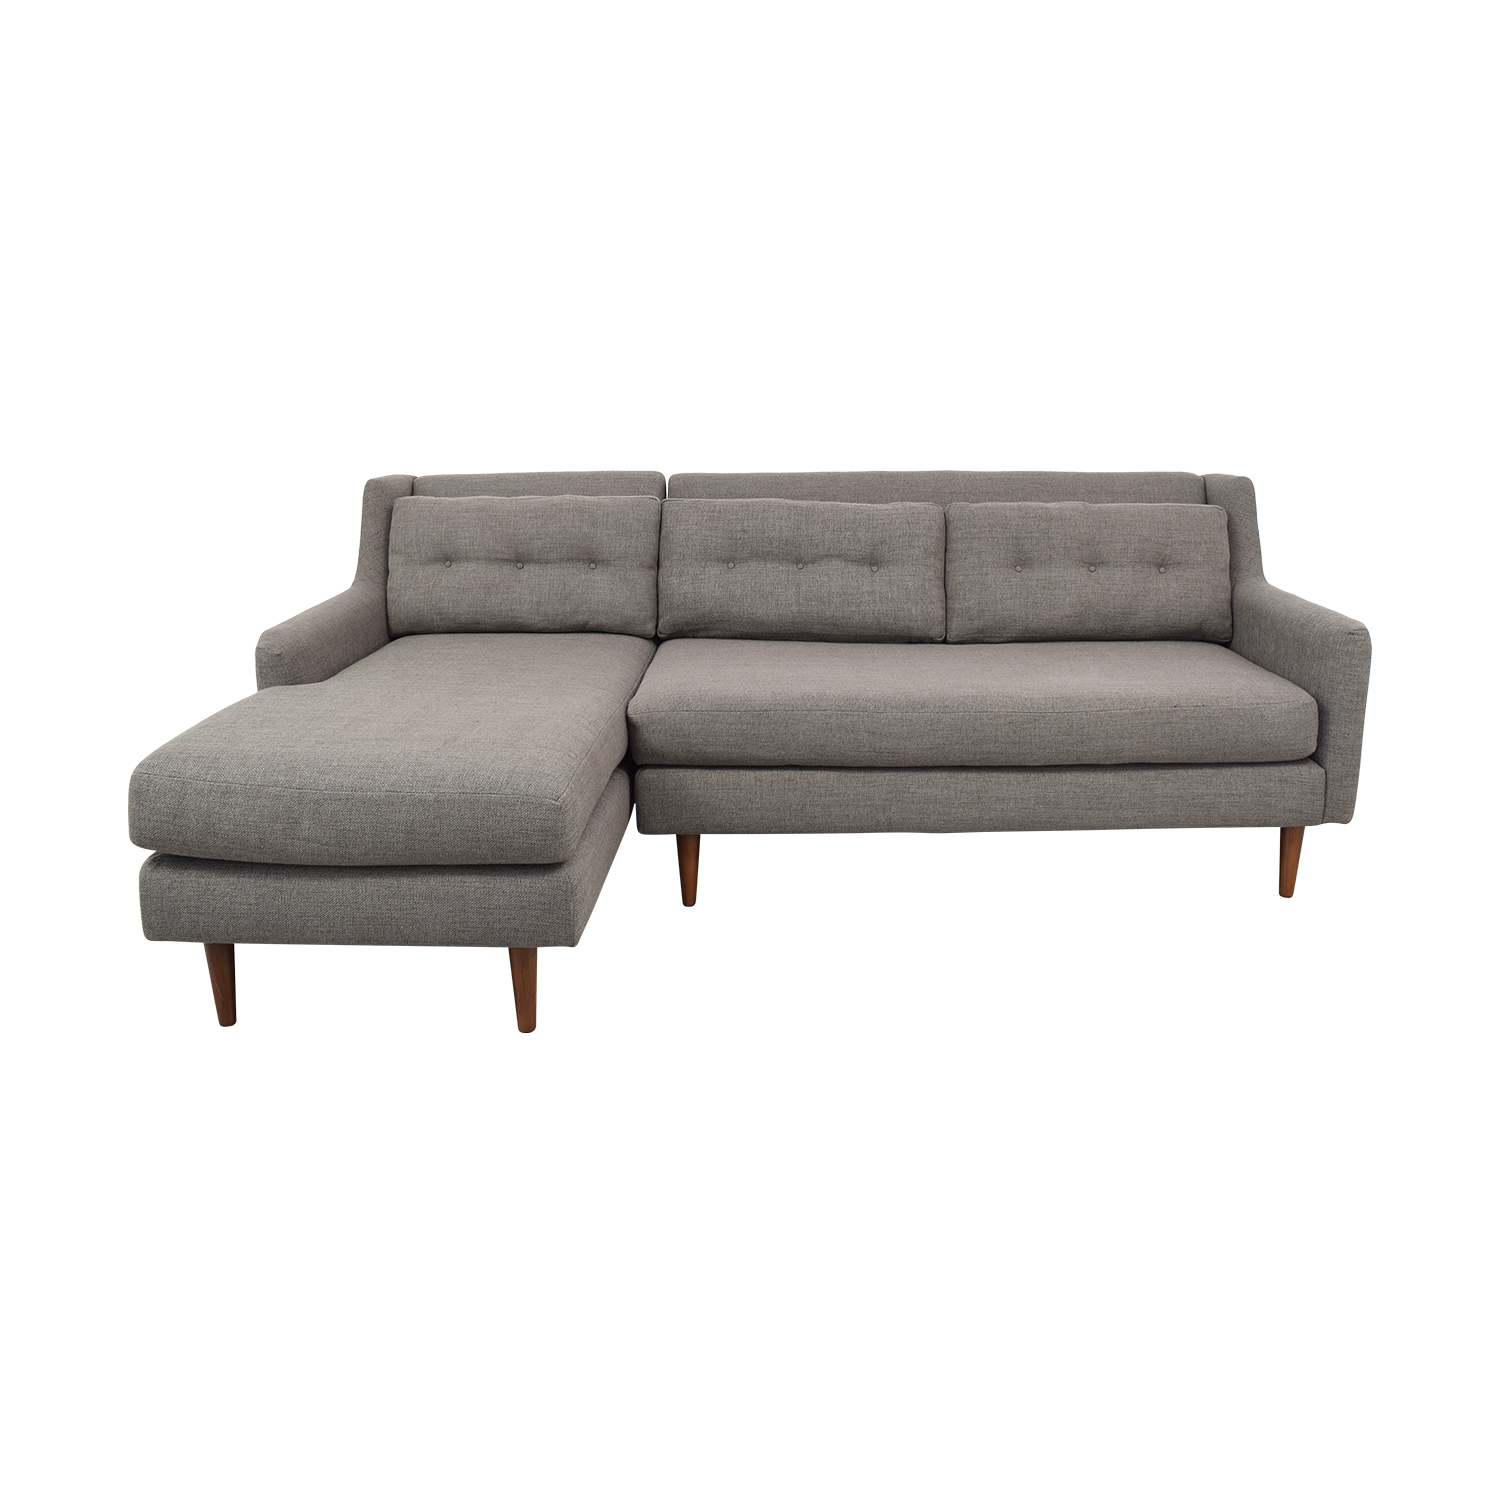 West Elm Crosby Two Piece Left Chaise Sectional Sofa / Sofas